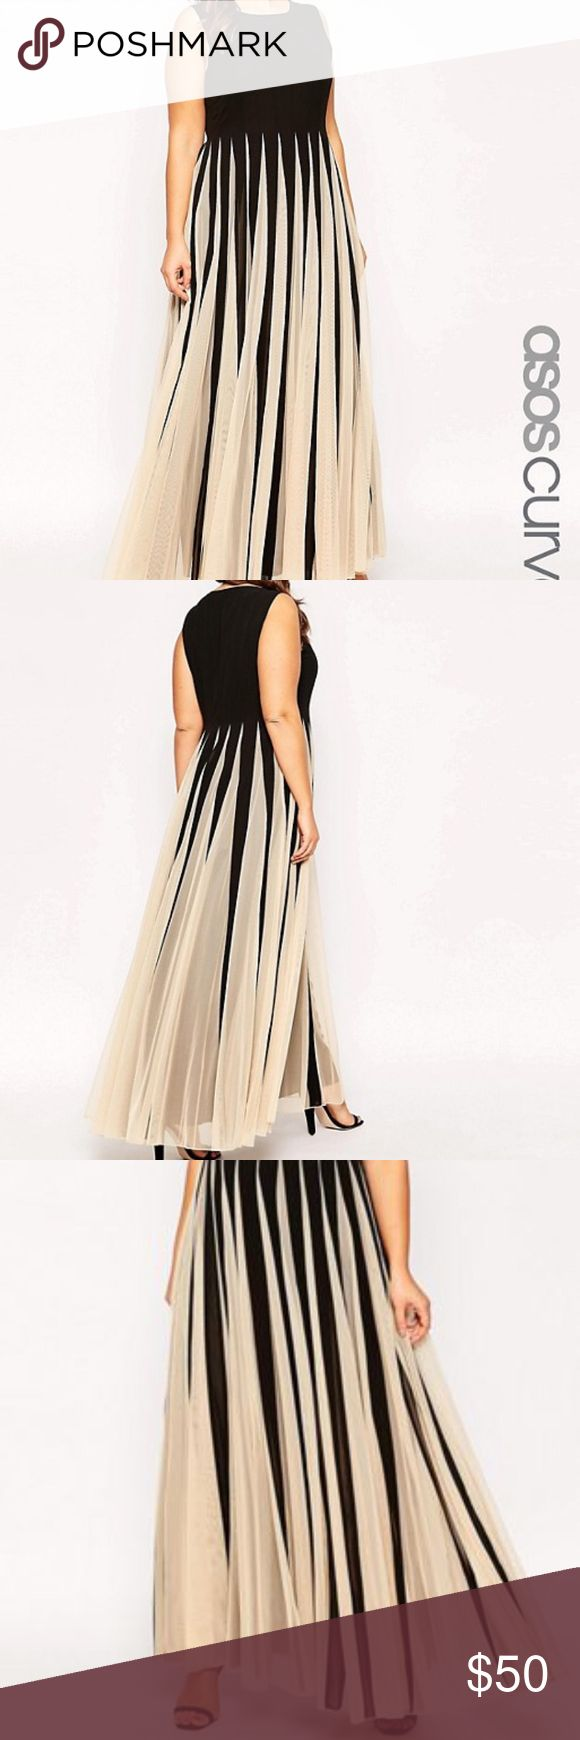 ASOS evening gown ASOS black and beige evening gown. Worn once but never dry cleaned, does have a few small stains that will be removed when dry cleaned. Price reflects the stains. Otherwise in great condition. ASOS Dresses